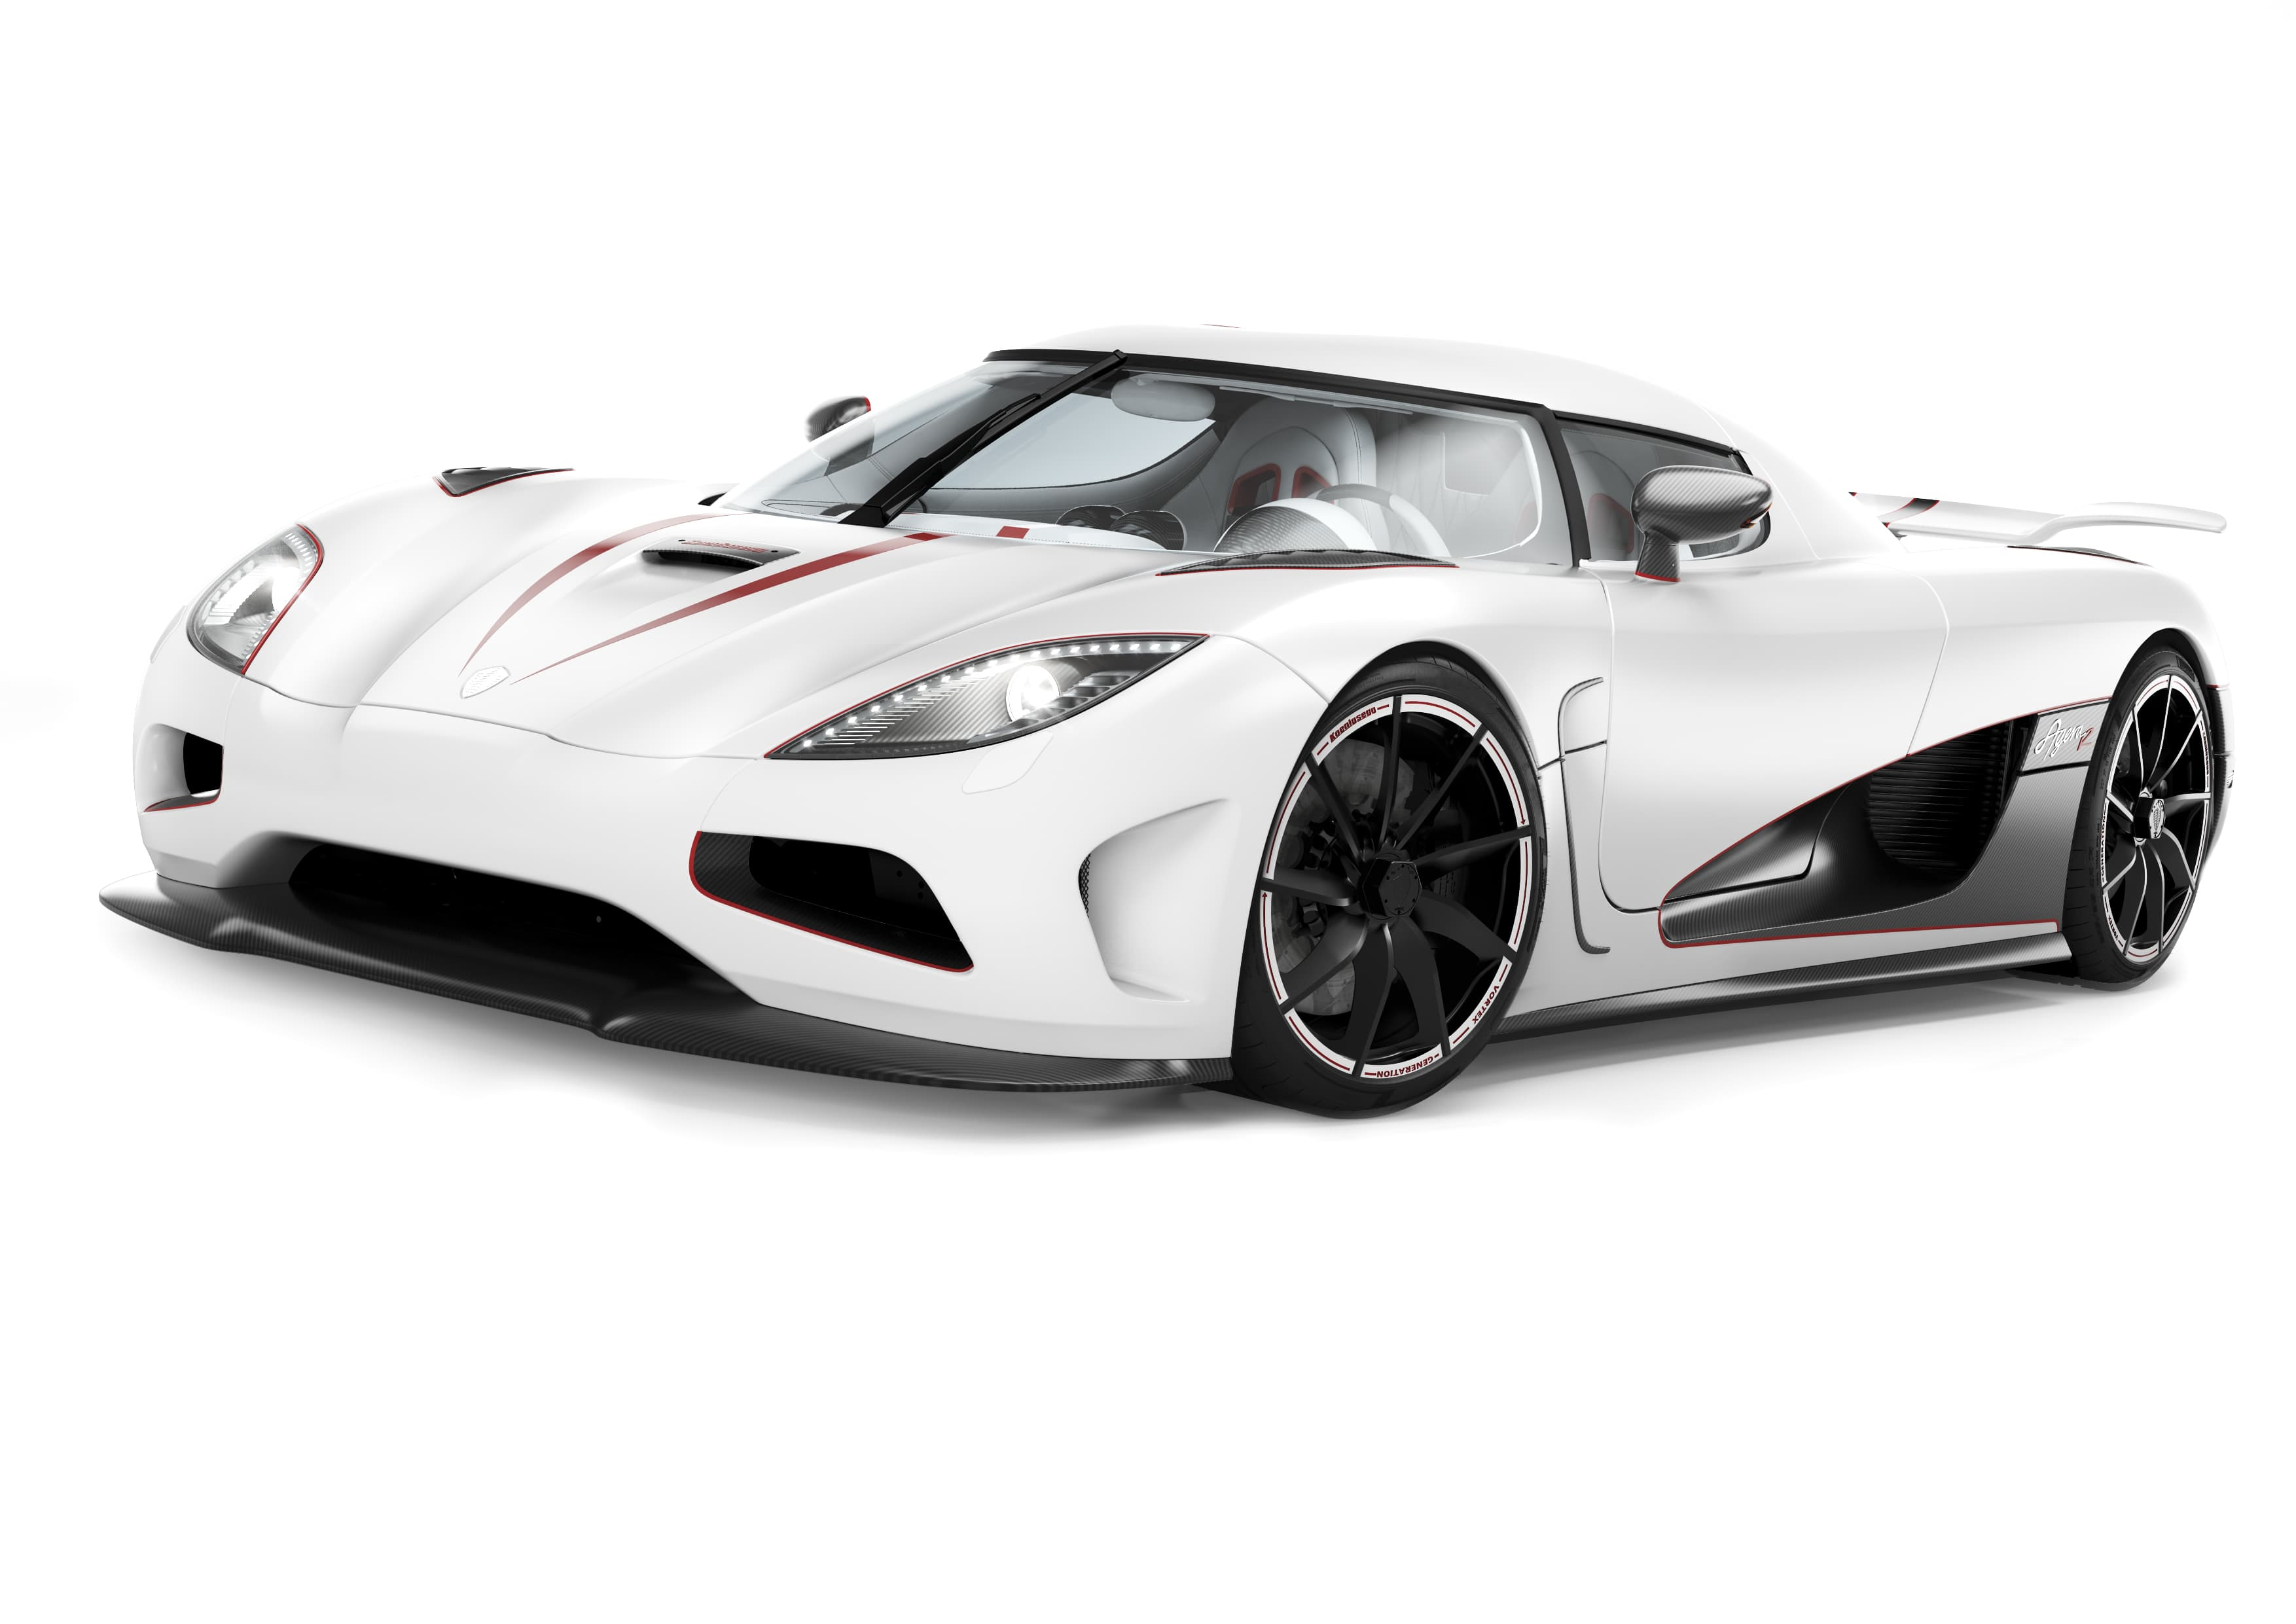 Koenigsegg Agera R widescreen wallpapers